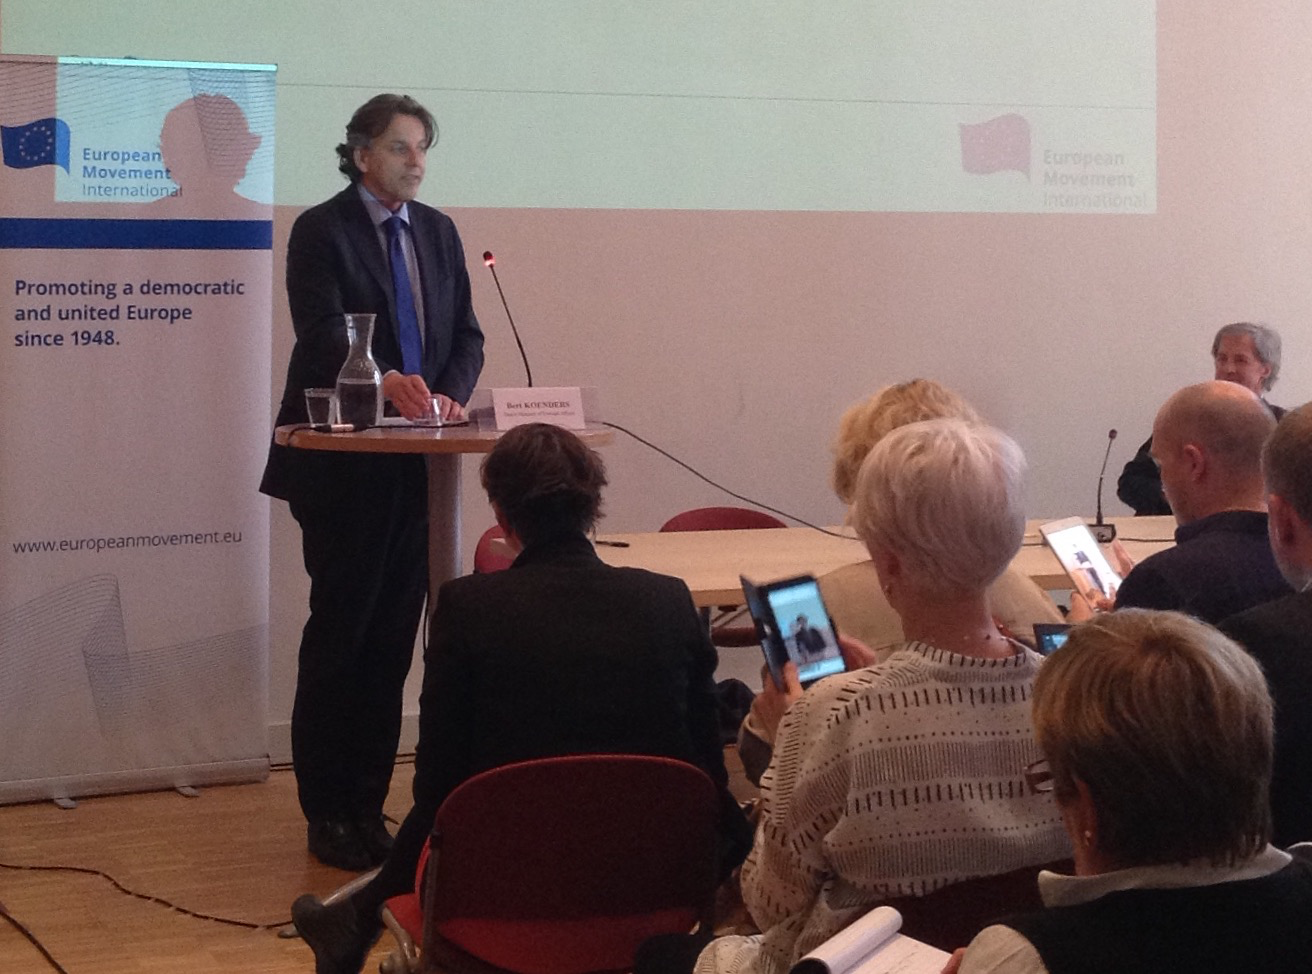 Minister Bert Koenders urges EMI to step up to help to meet the fundamental European reform challenges